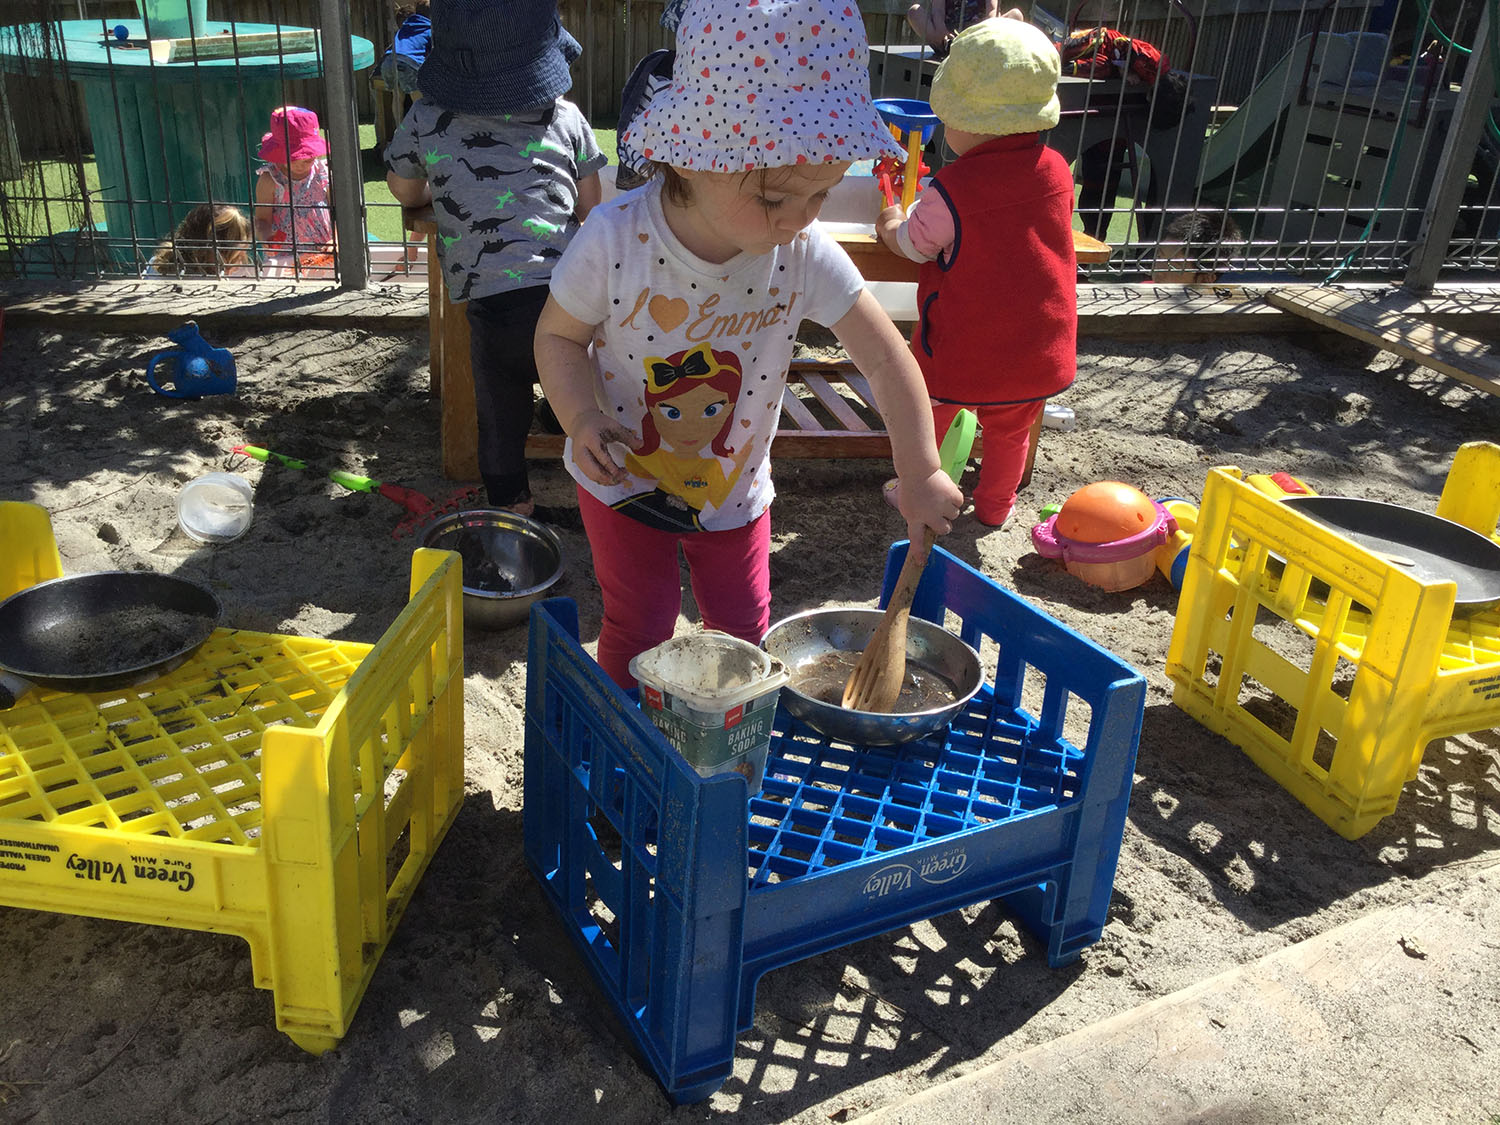 Cooking in the sandpit